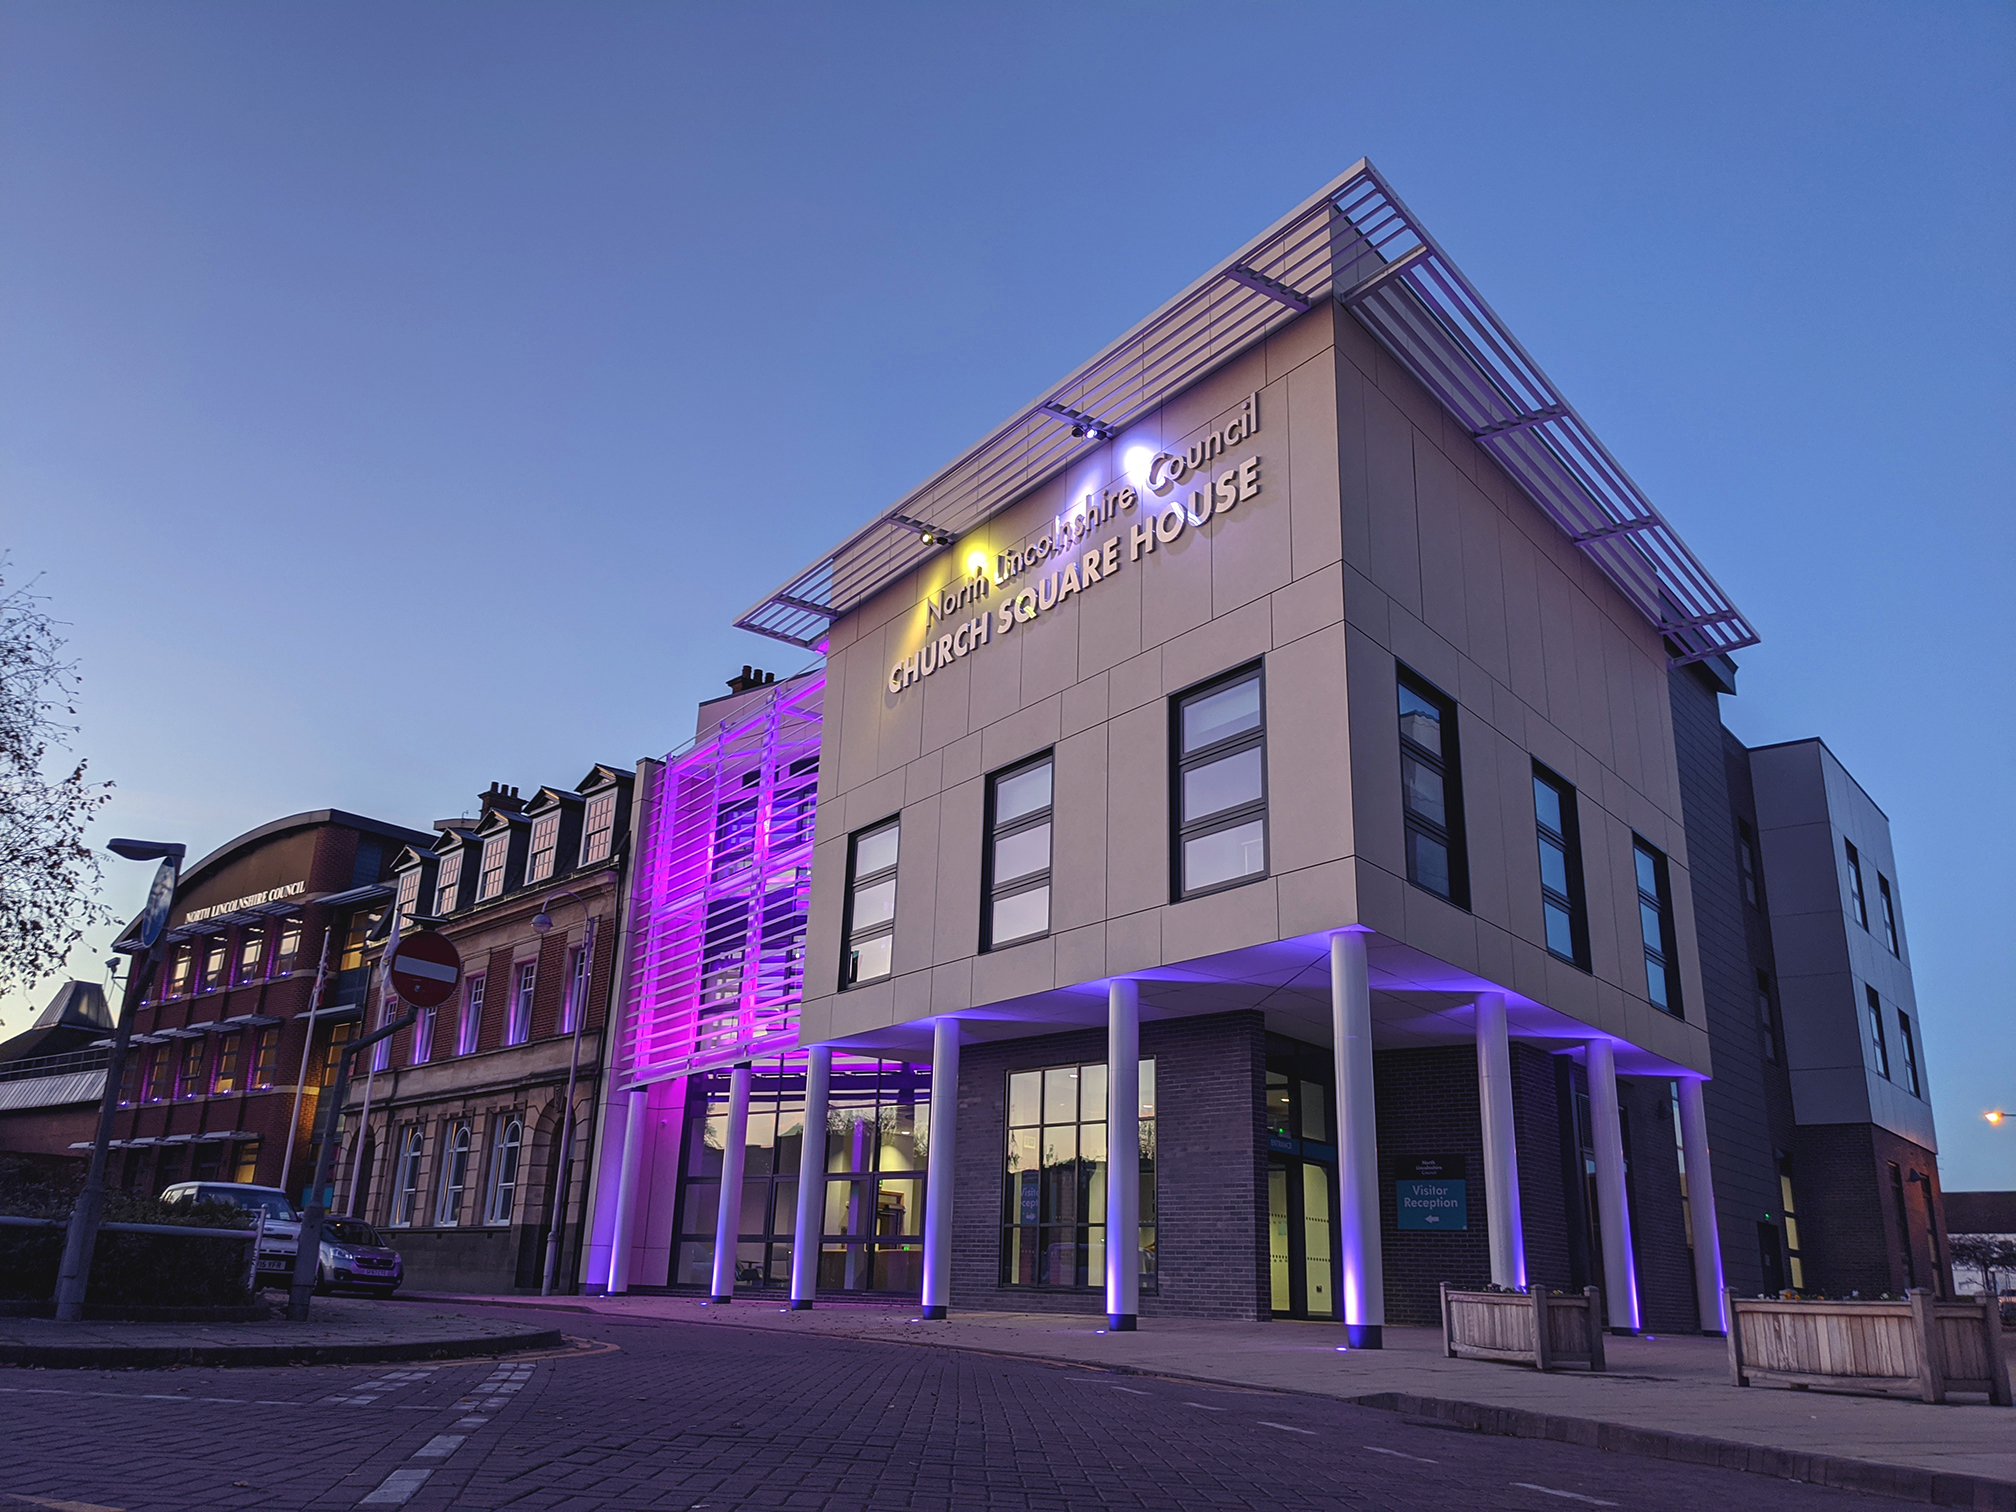 Church Square House purple for pancreatic cancer awareness month